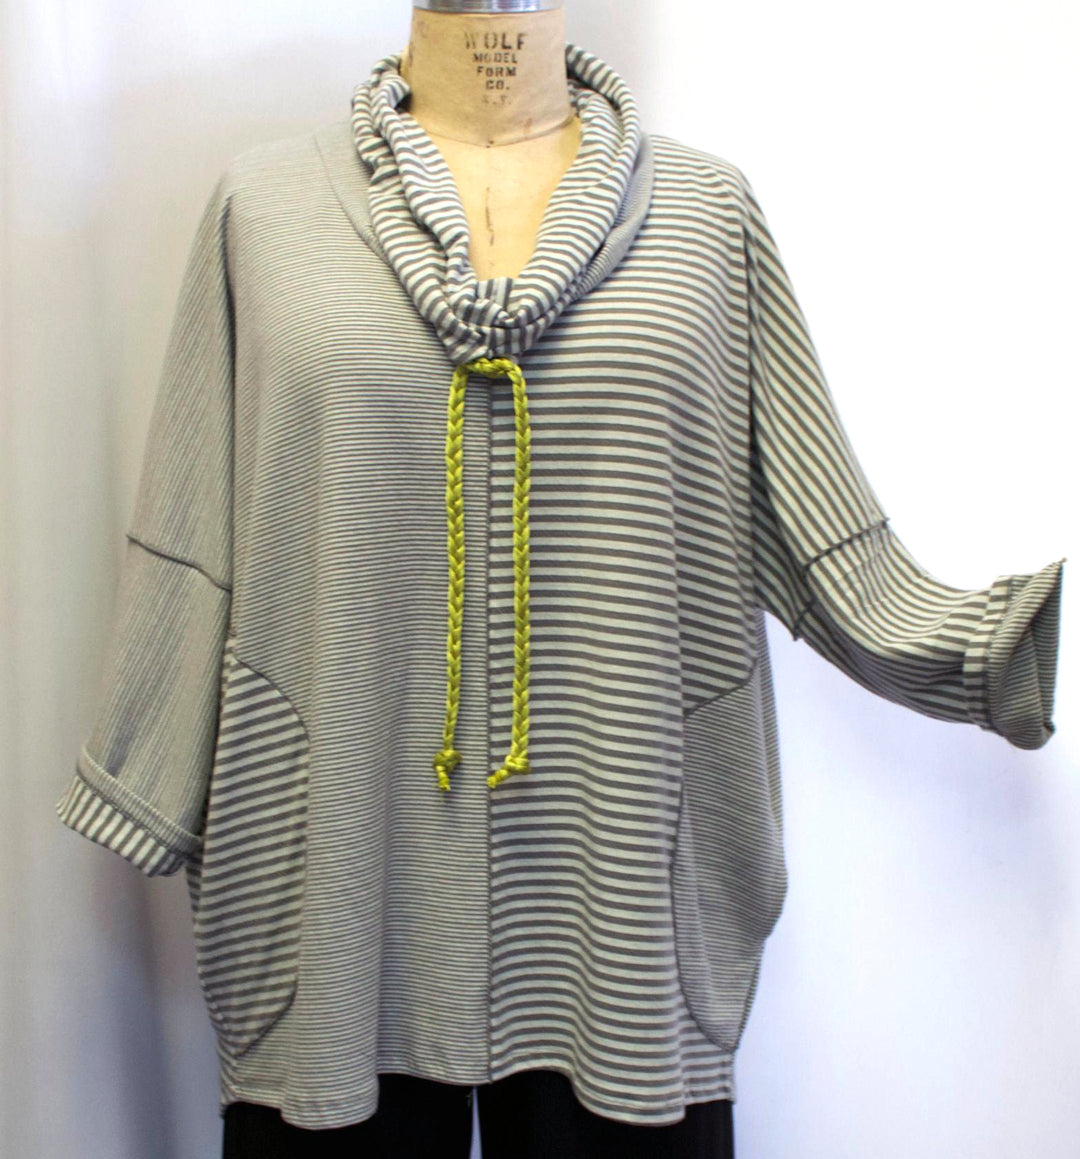 Sunheart Westport striped Pull-Over Tunic Ruched Collar Lifestyle Boho Hippie Chic SML-6X